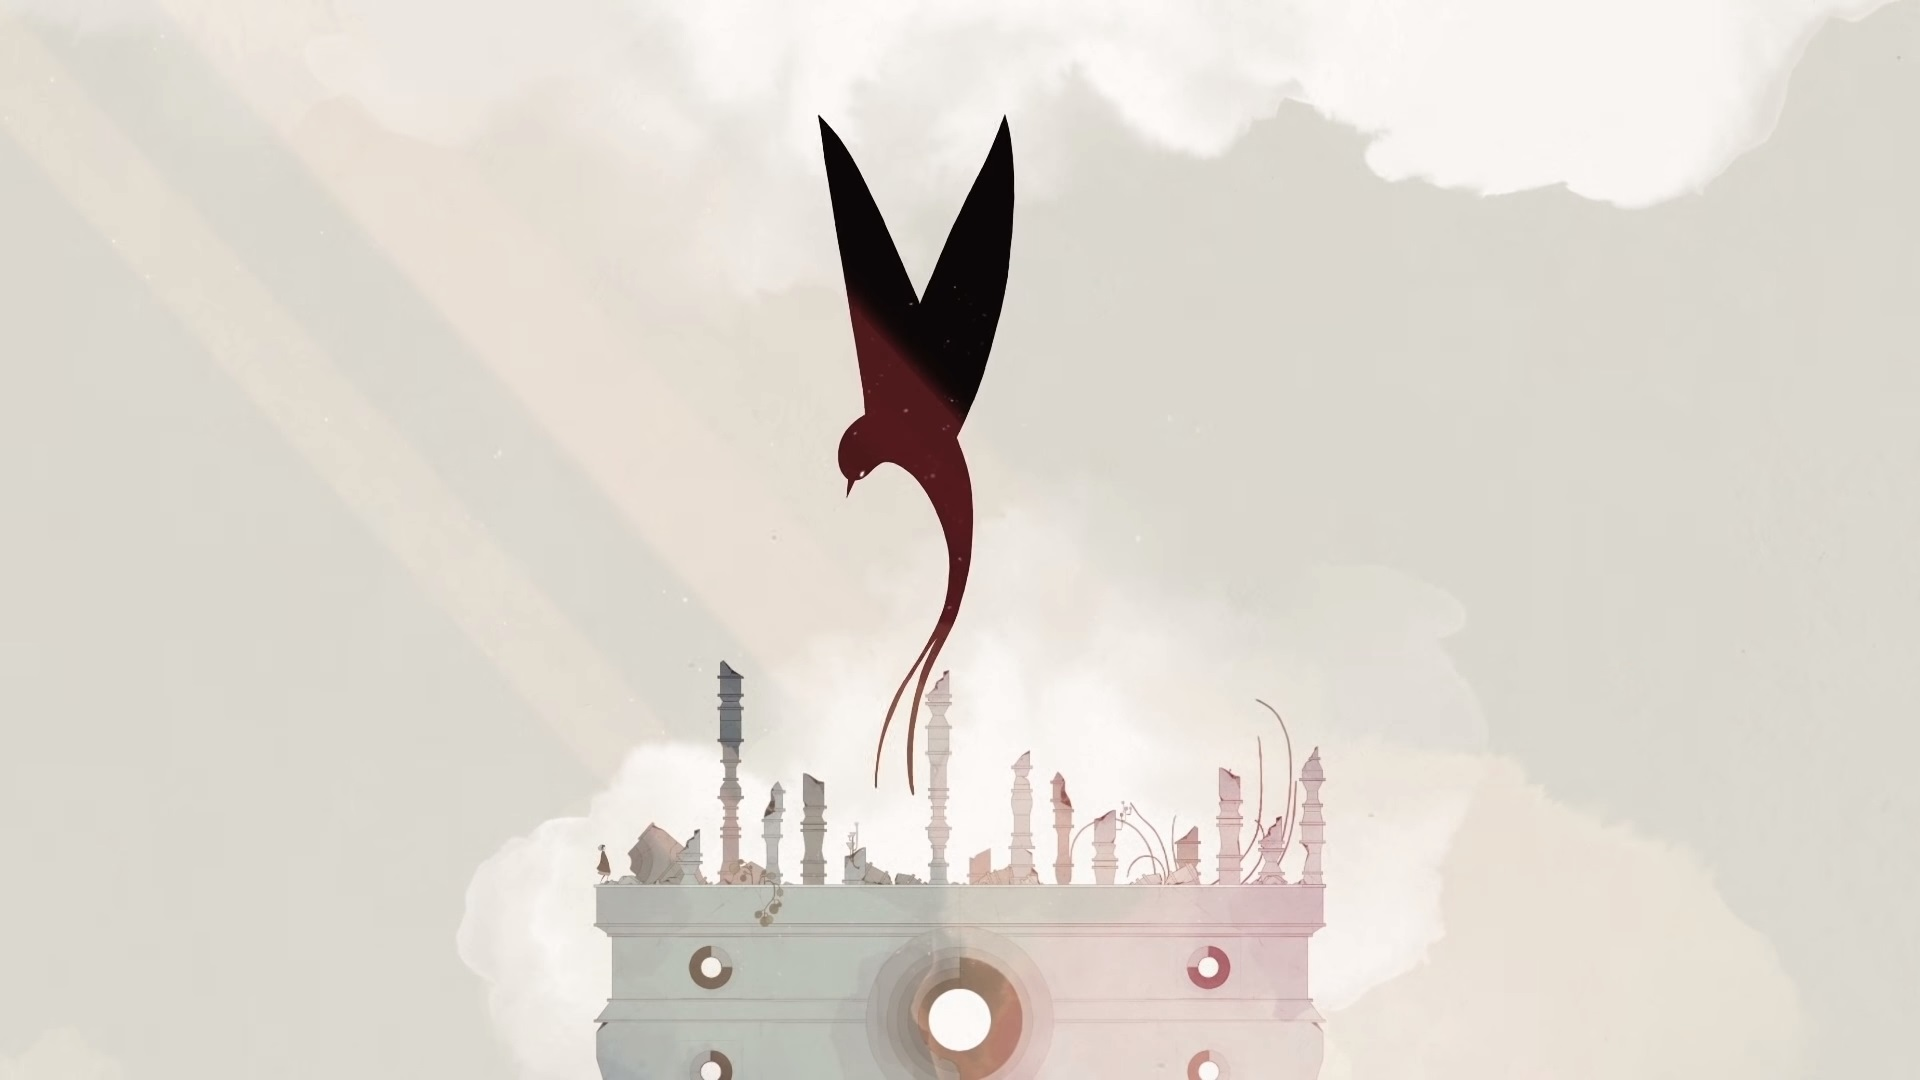 Lost Girl Wallpaper Hd Check Out Nomada Studio S Gorgeous Game Gris Tettybetty